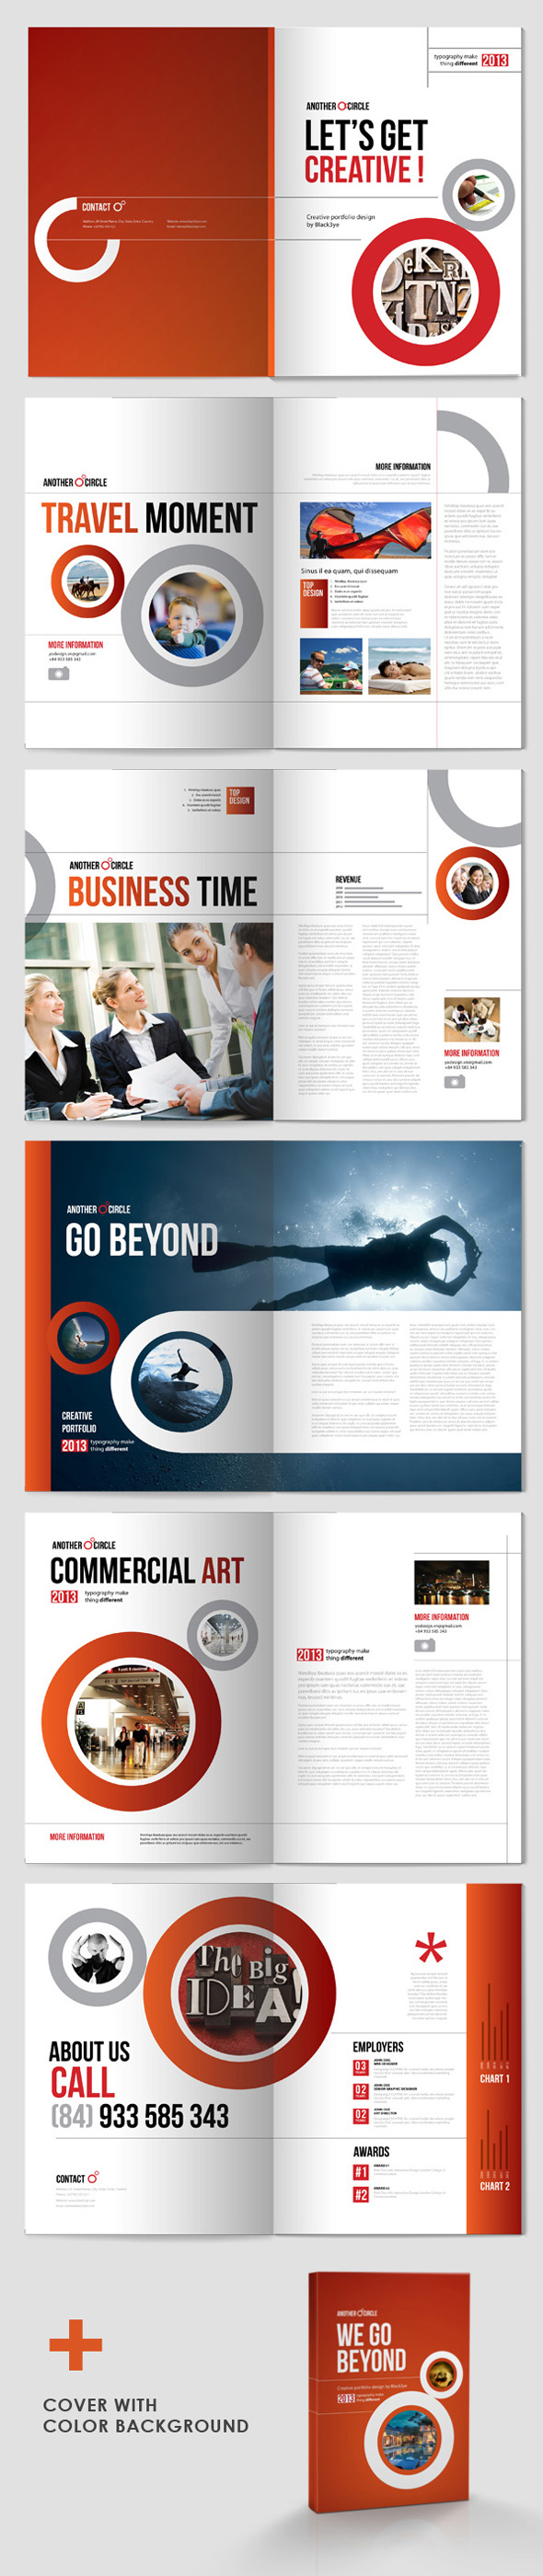 a4 ANNUAL report block book Booklet brochure business Catalogue circle clean concept corporate